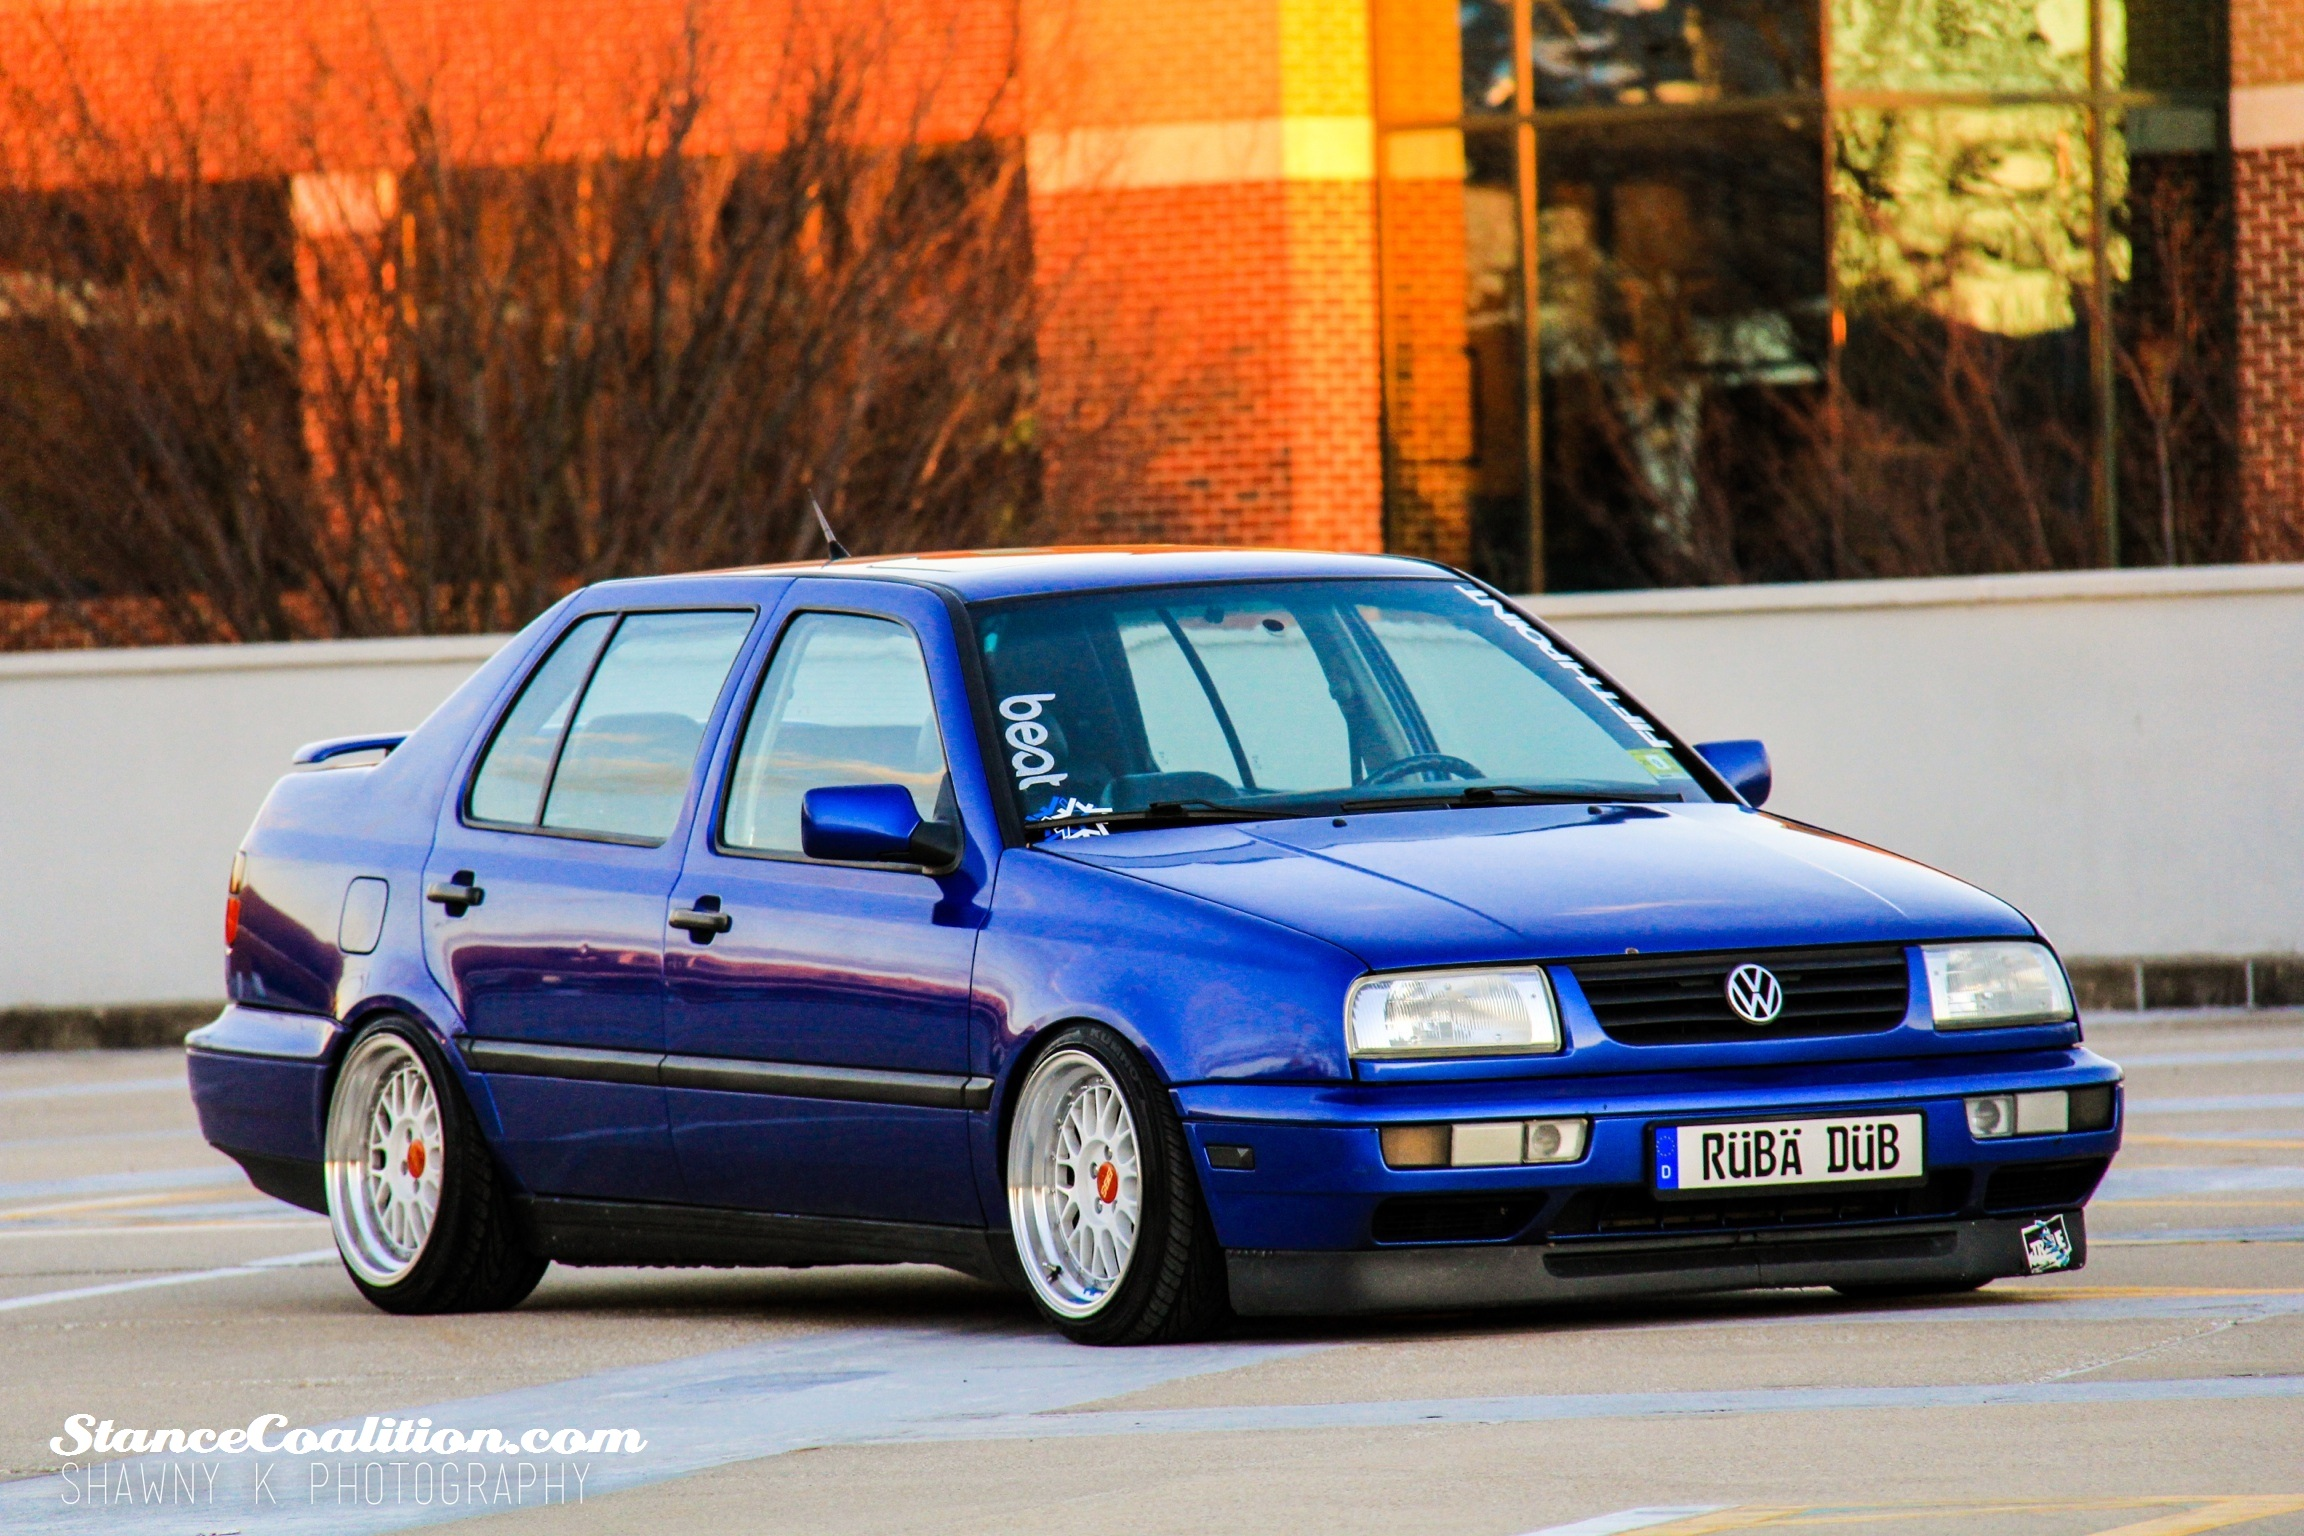 Rough Ending to a Fun Ride – Eric's MK3 VR6 | StanceCoalition